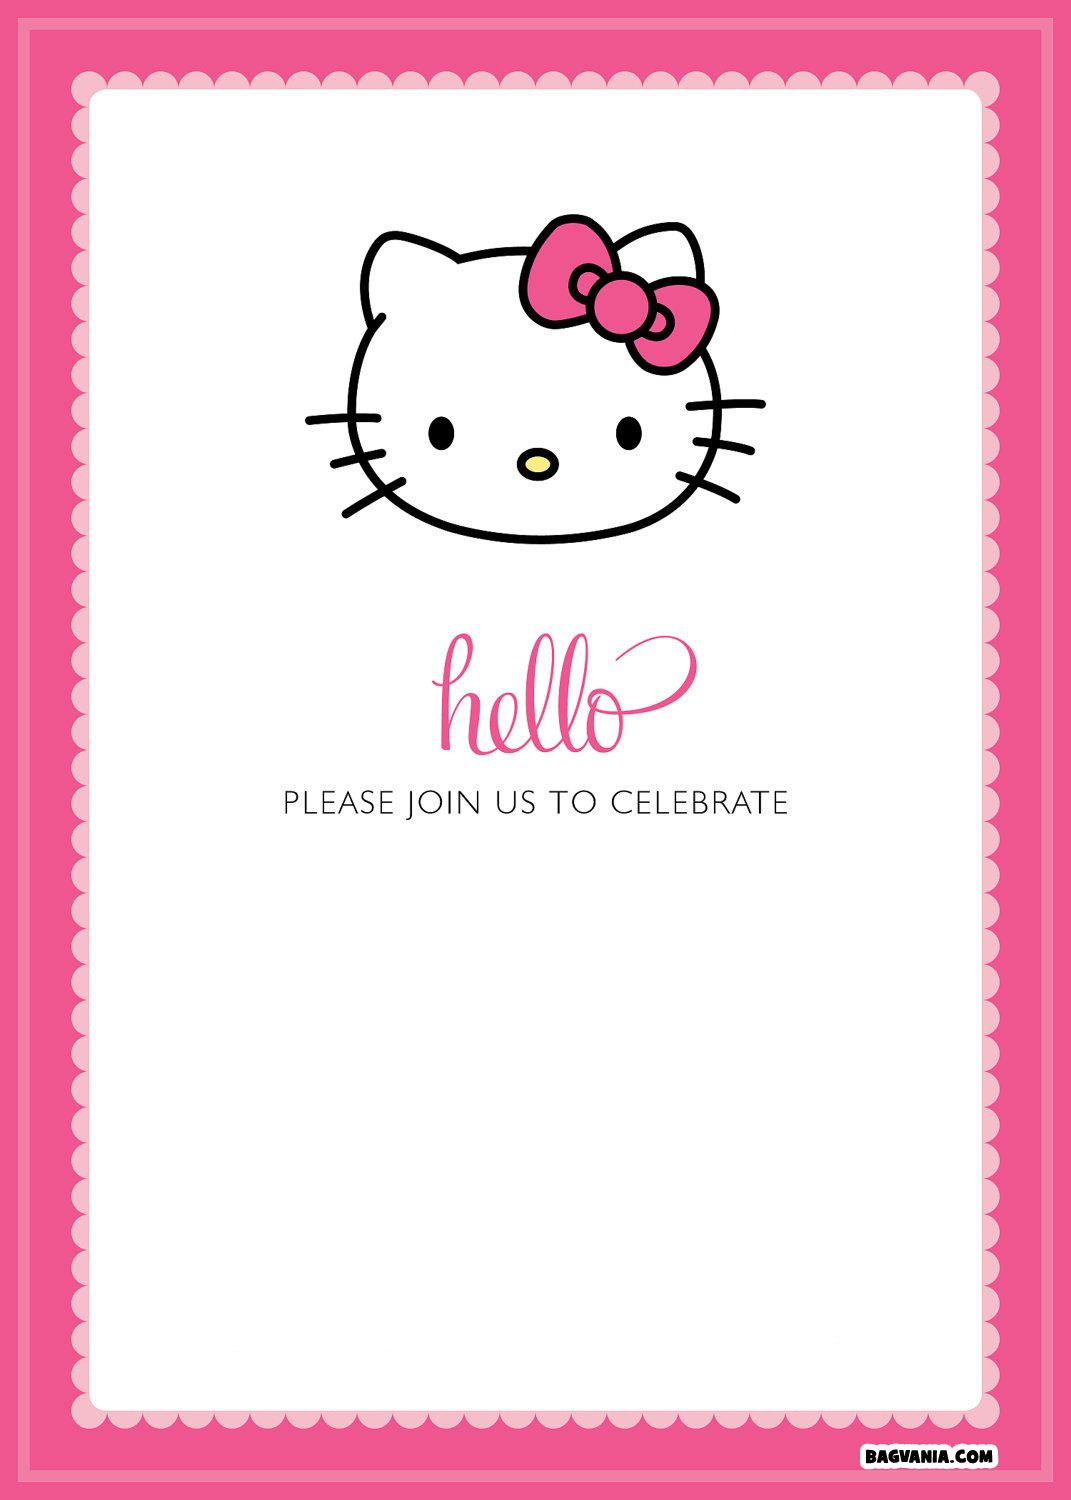 Free Printable Hello Kitty Birthday Invitations – Bagvania Free - Hello Kitty Free Printable Invitations For Birthday